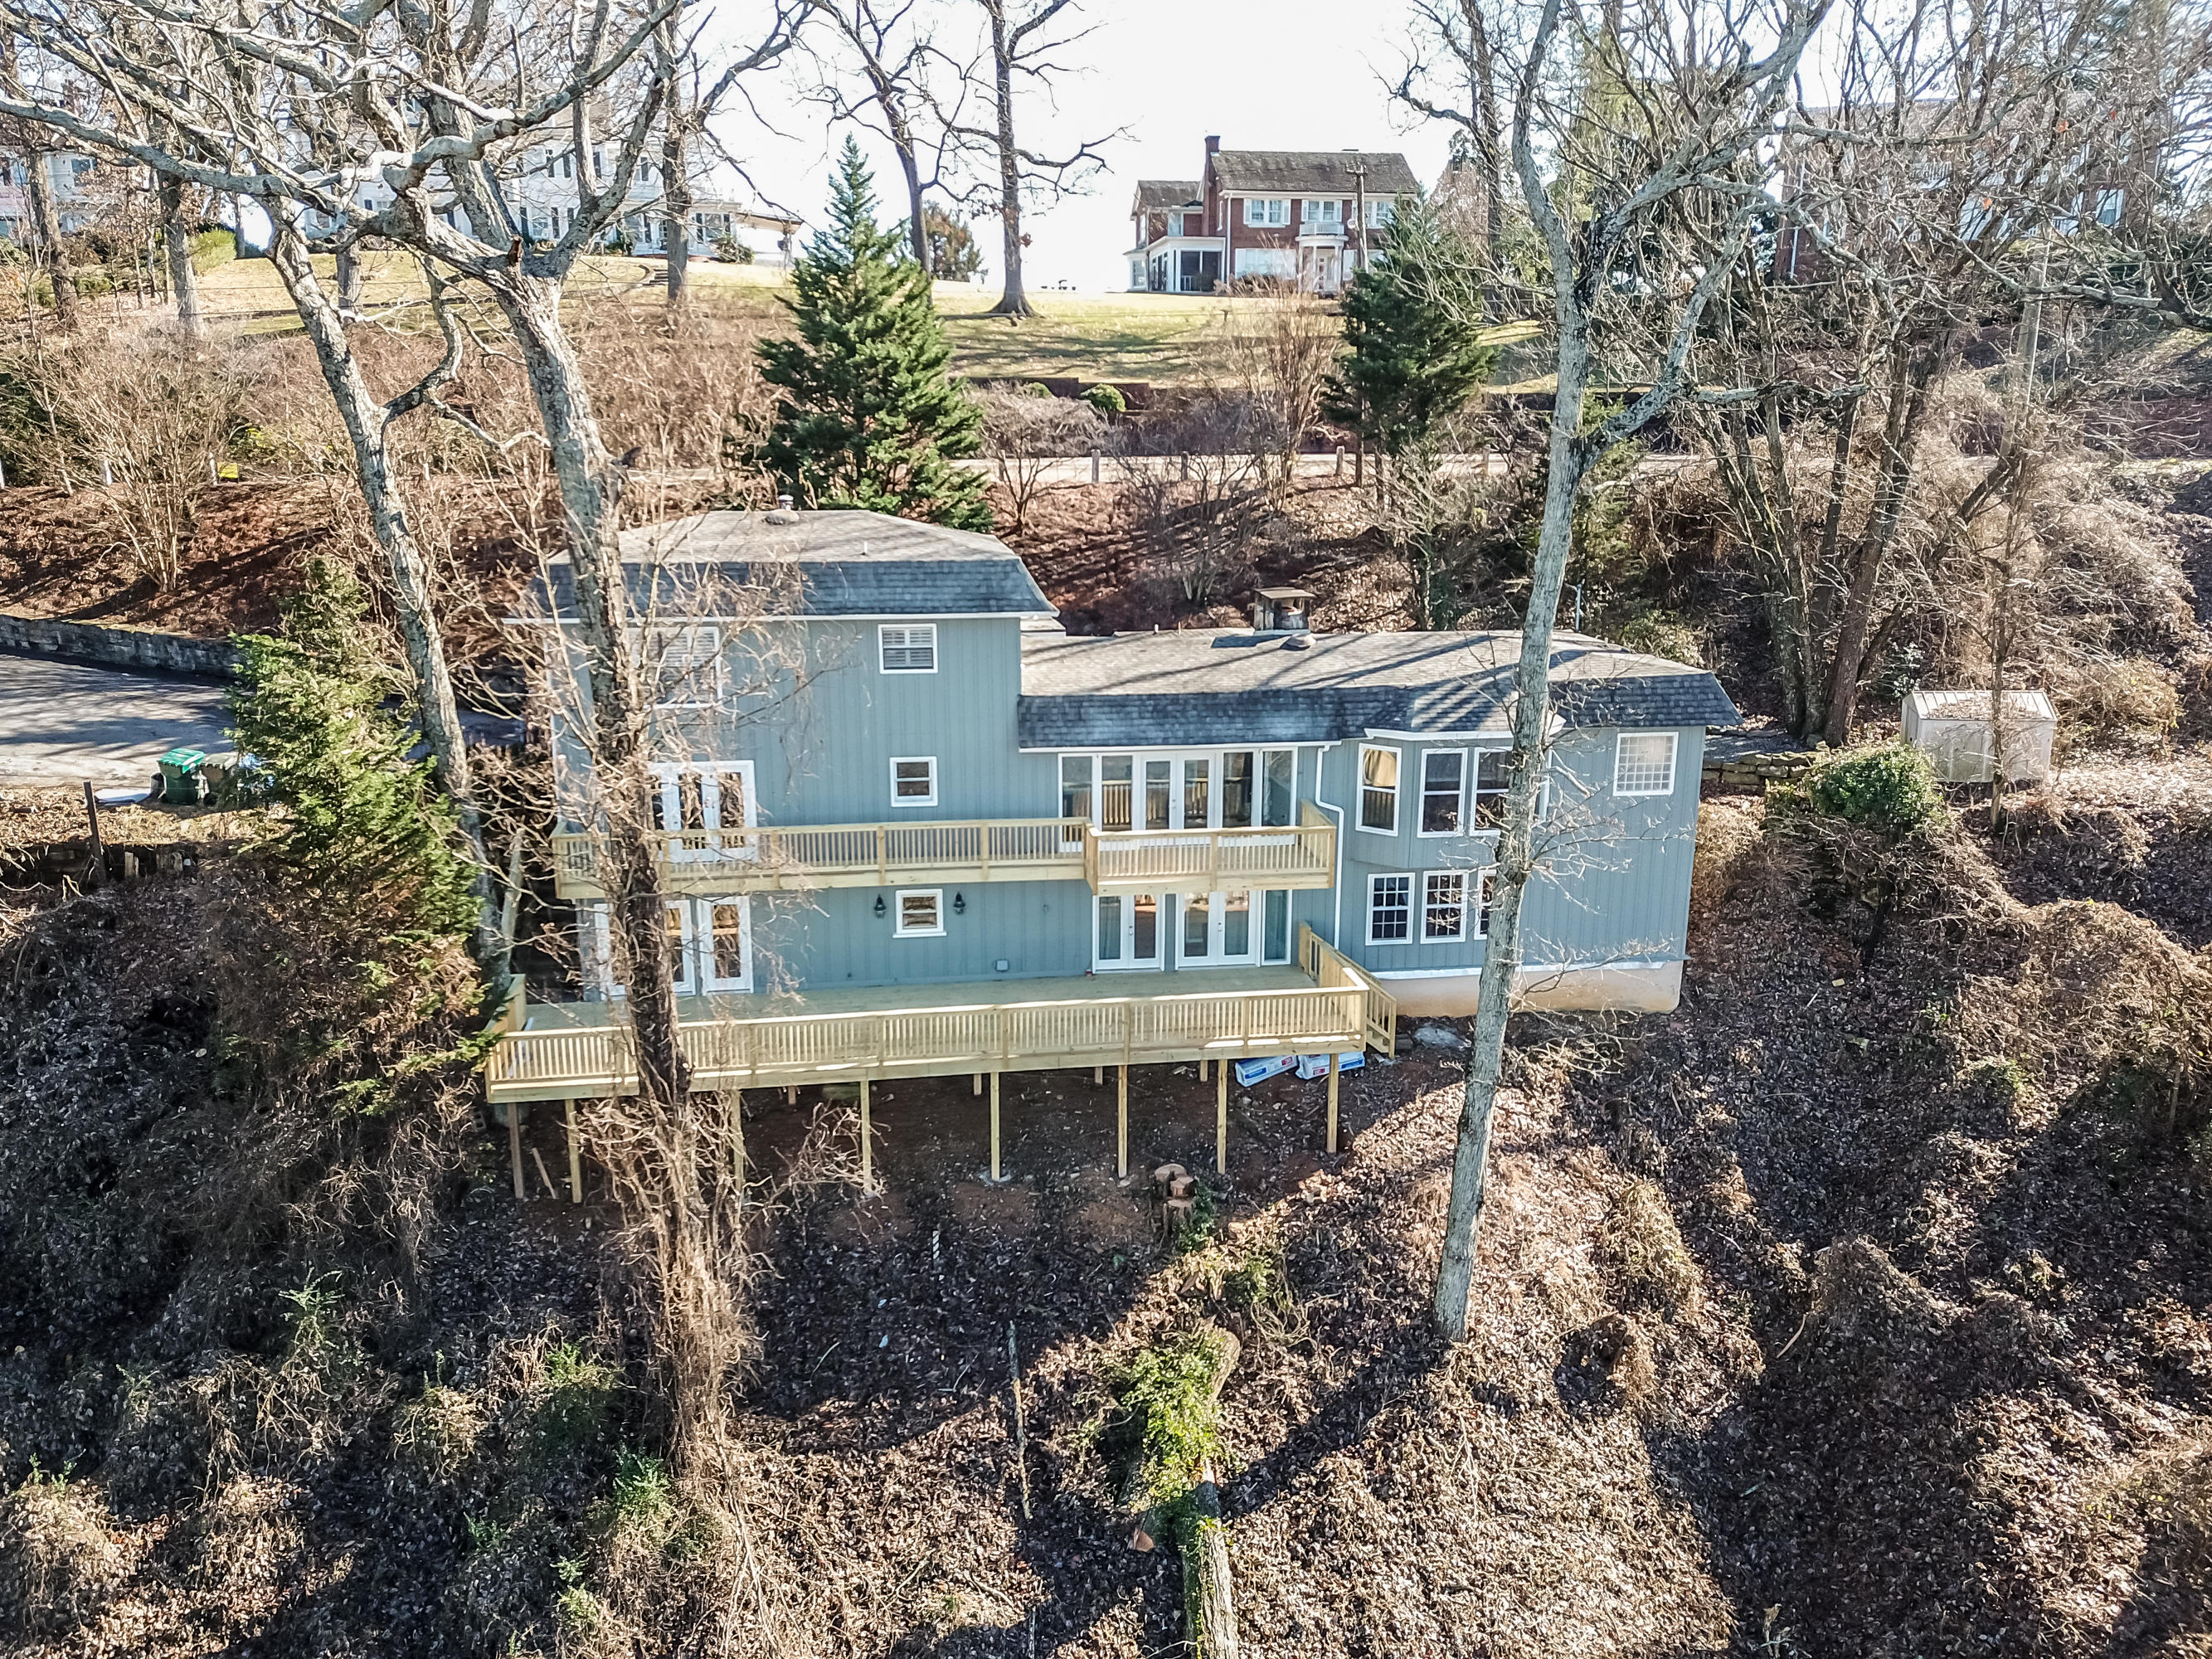 201 S Crest  Rd, Chattanooga, Tennessee